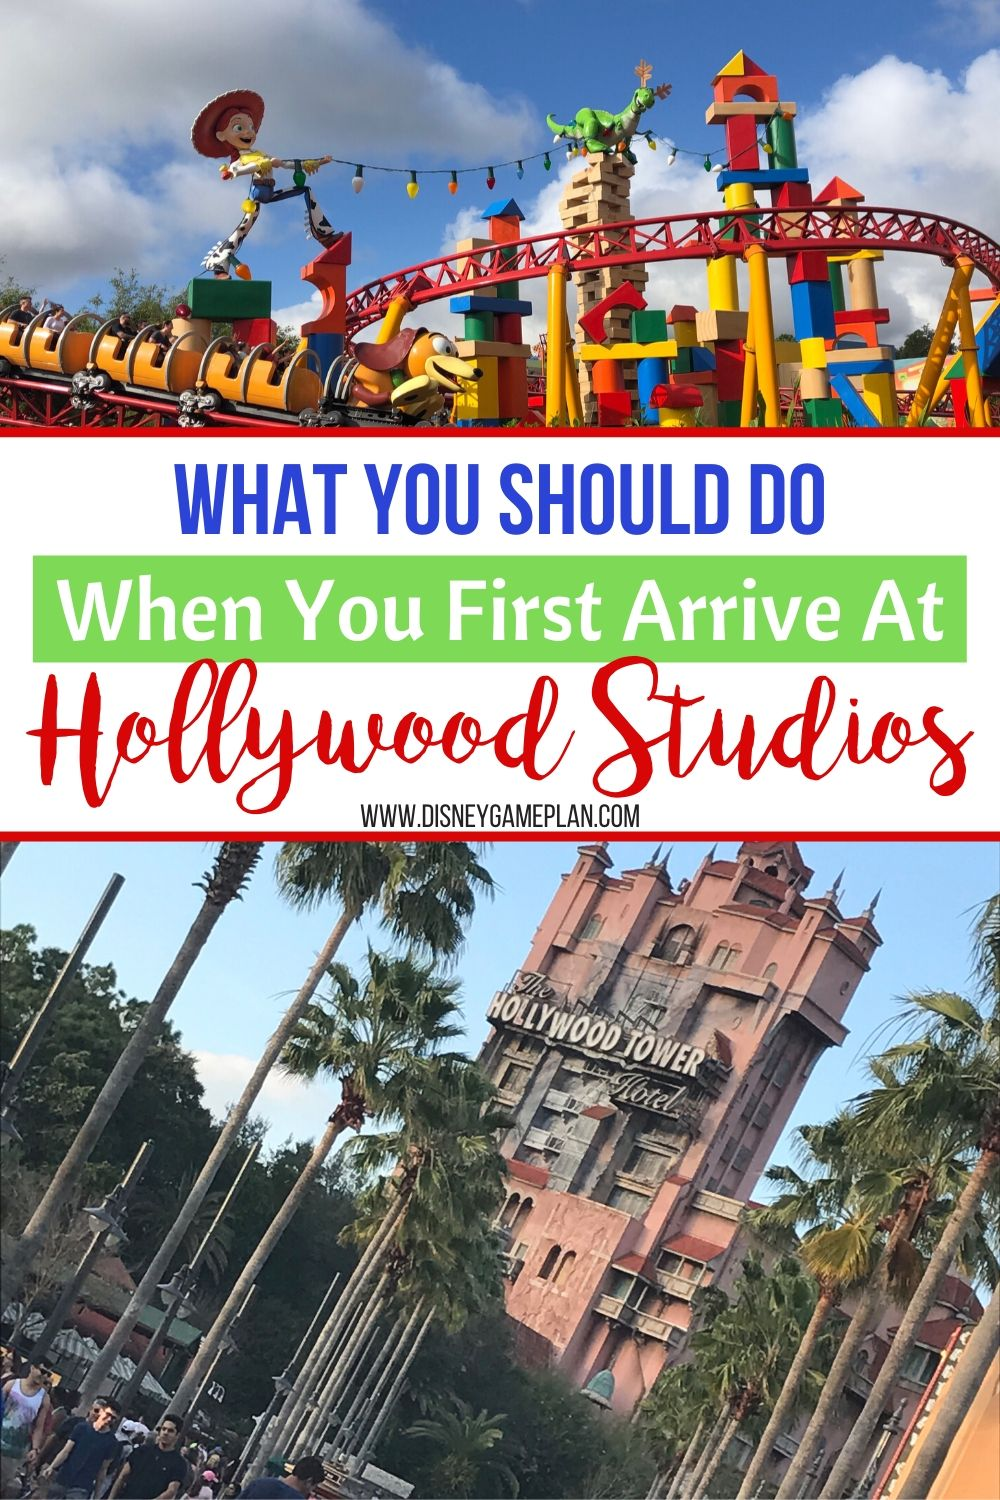 Here are the first things you should do when you first arrive at Disney Hollywood Studios Park at Walt Disney World. Check out these Disney Planning tips. Disney Hollywood Studios is in some ways the most complex park at Walt Disney World. The attractions span the spectrum of shows for small children to thrills for teens and up. There is a mishmash of theming that ranges from studio lot theme to immersive worlds from Star Wars and Toy Story. #DisneyWorldPlanningTips #HollywoodStudios